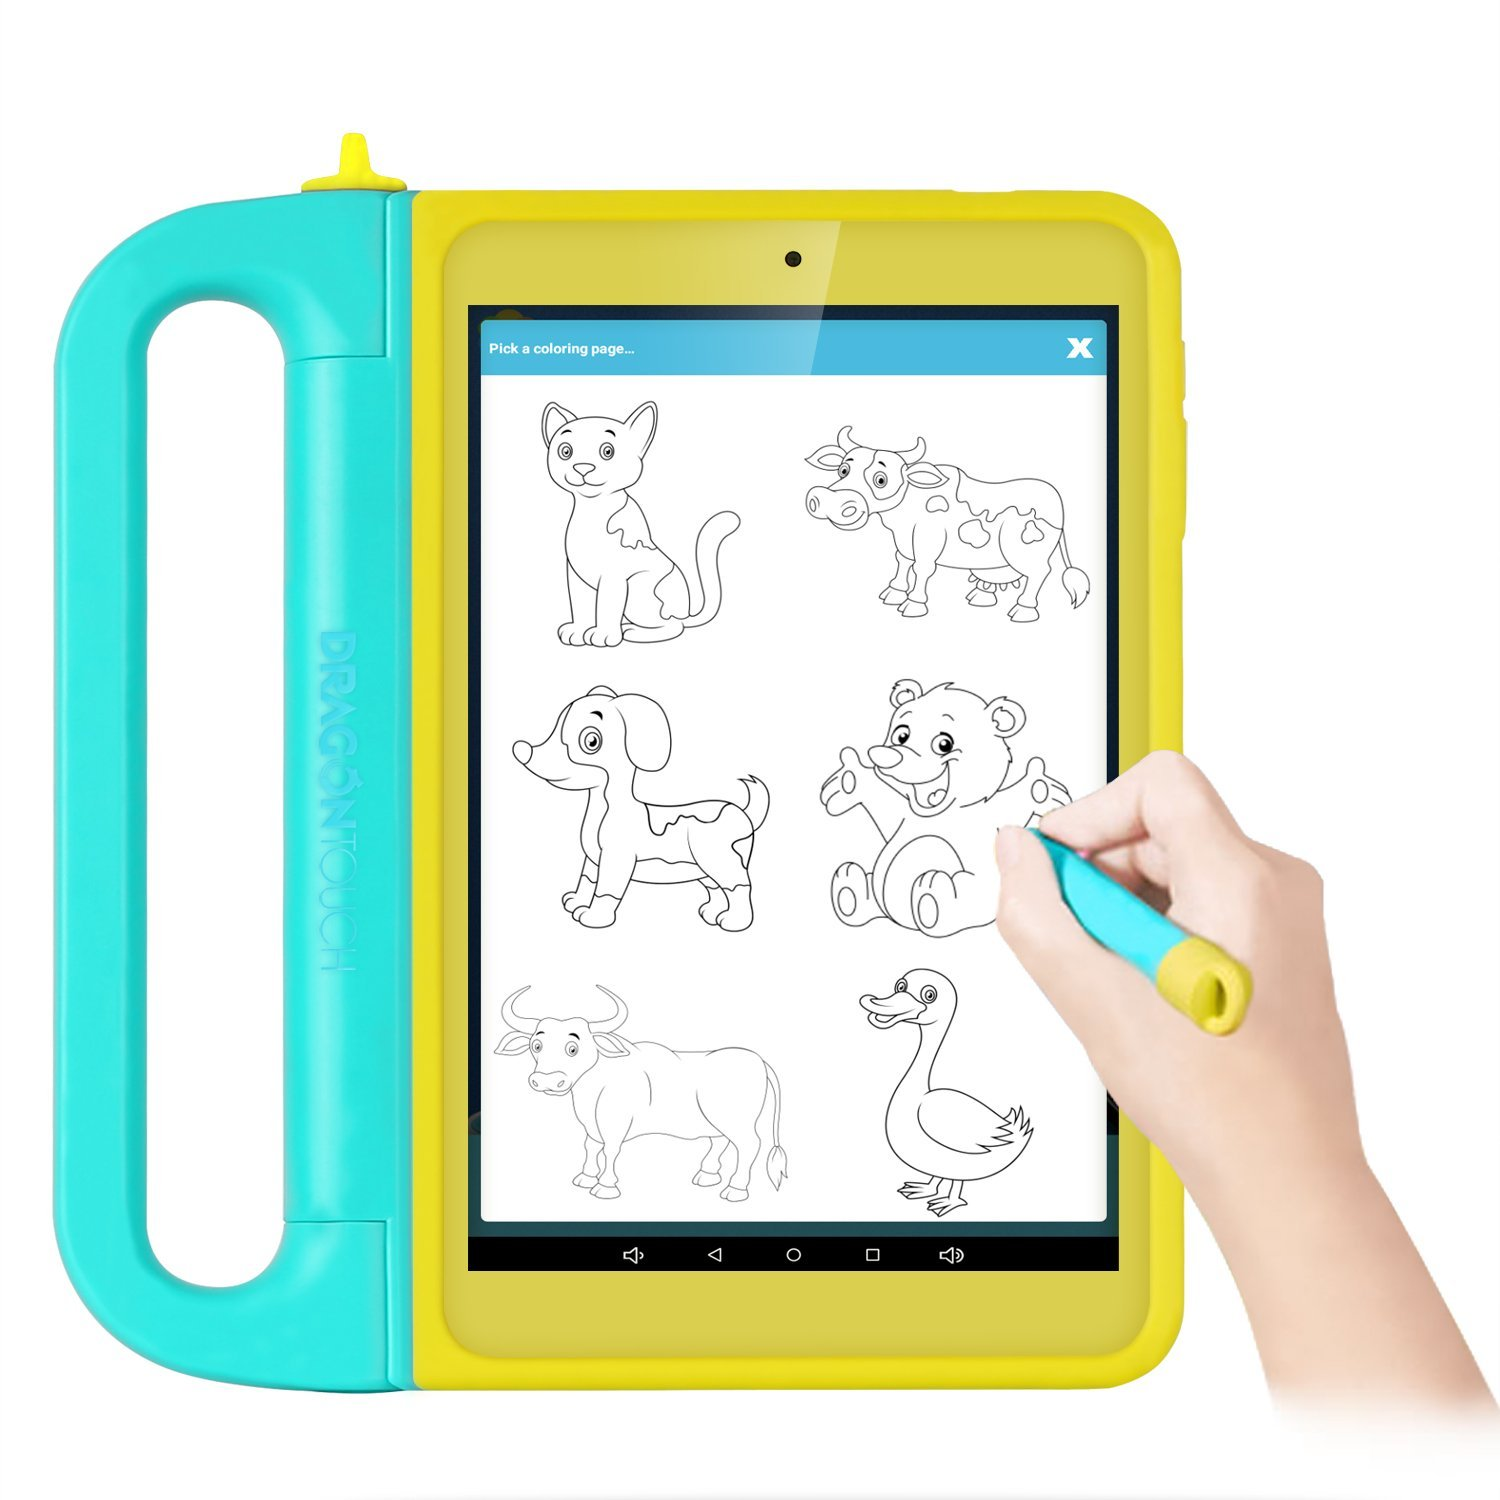 DragonTouch K8 8inch Kids Tablet Kidoz Pre-Installed 2GB RAM 16GB Nand Flash IPS Display Android 6.0 Marshmallow Android Tablet